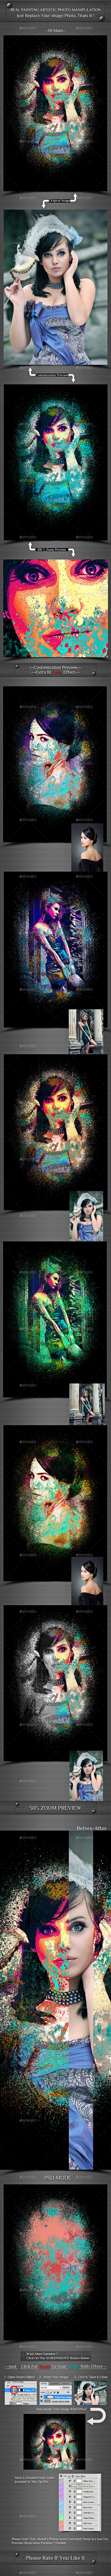 Real Painting Artistic Photo Manipulation - Photo Templates Graphics